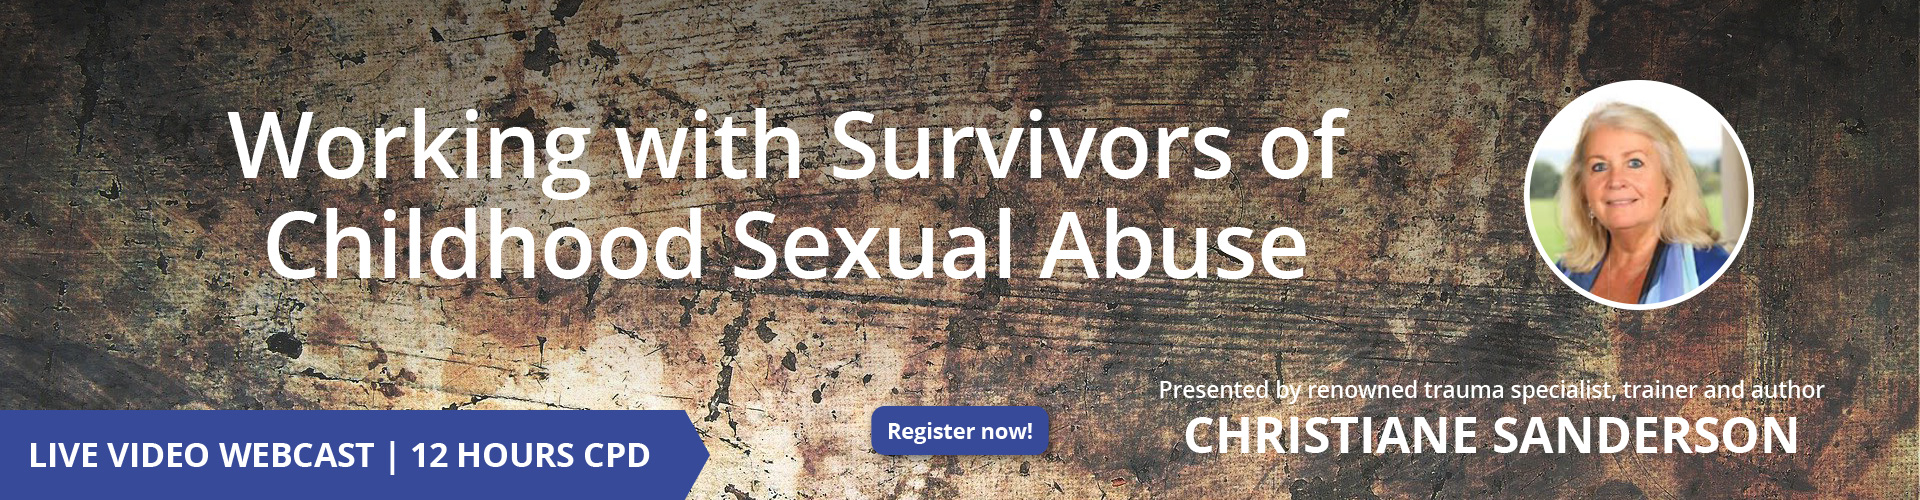 Working with Survivors of Childhood Sexual Abuse